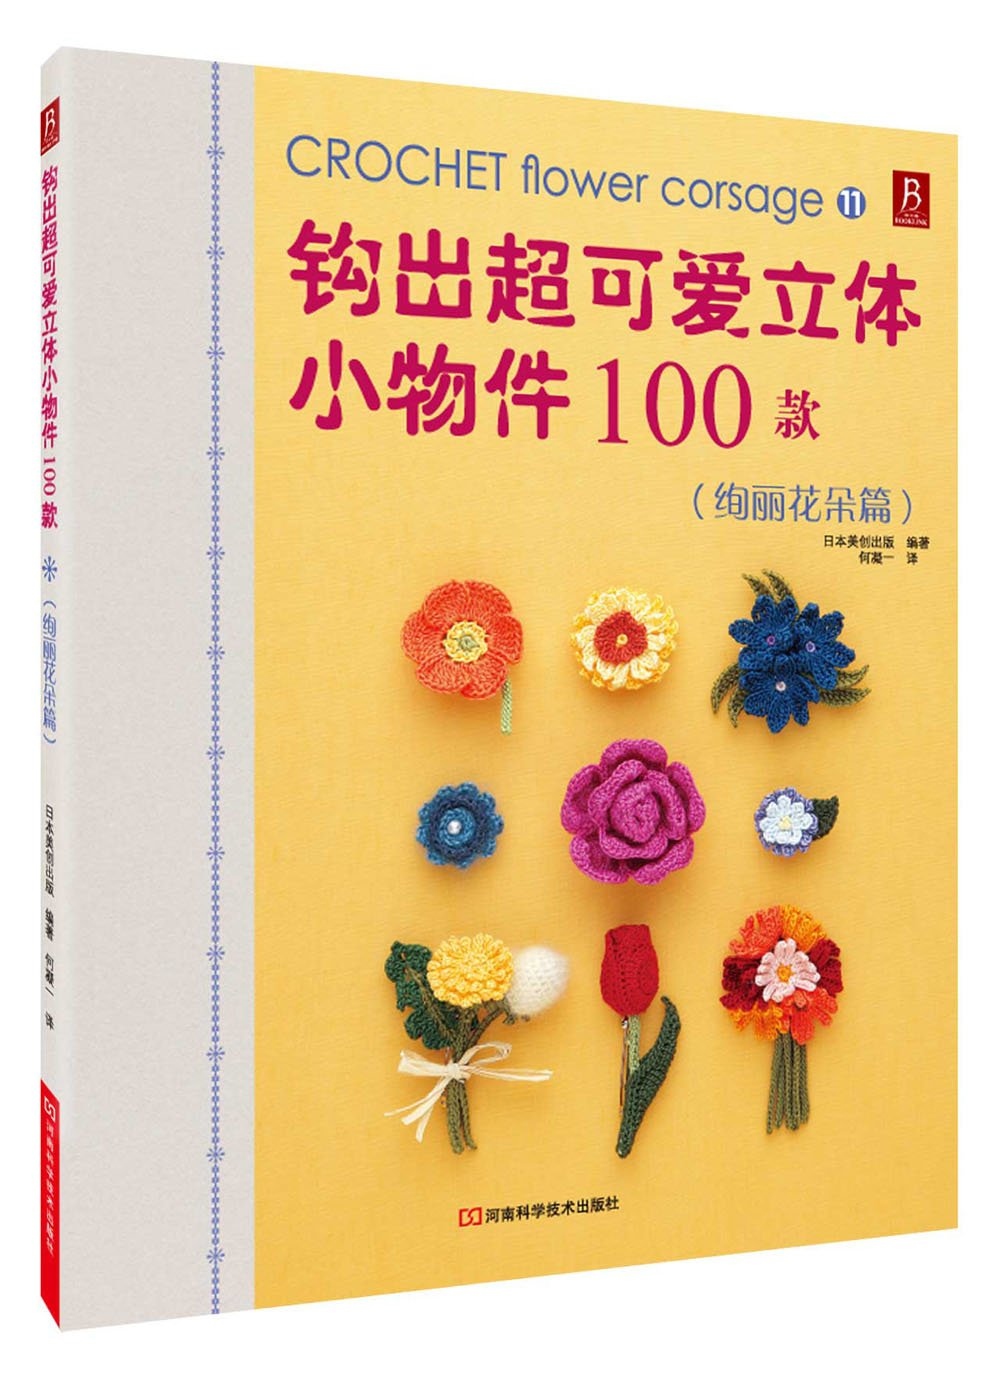 Crochet Flower Corsage  / Weaving super-cute 3d small objects 100 models Chinese knitting book / 3D Handmade Carft Book 100 super cute little embroidery chinese embroidery handmade art design book